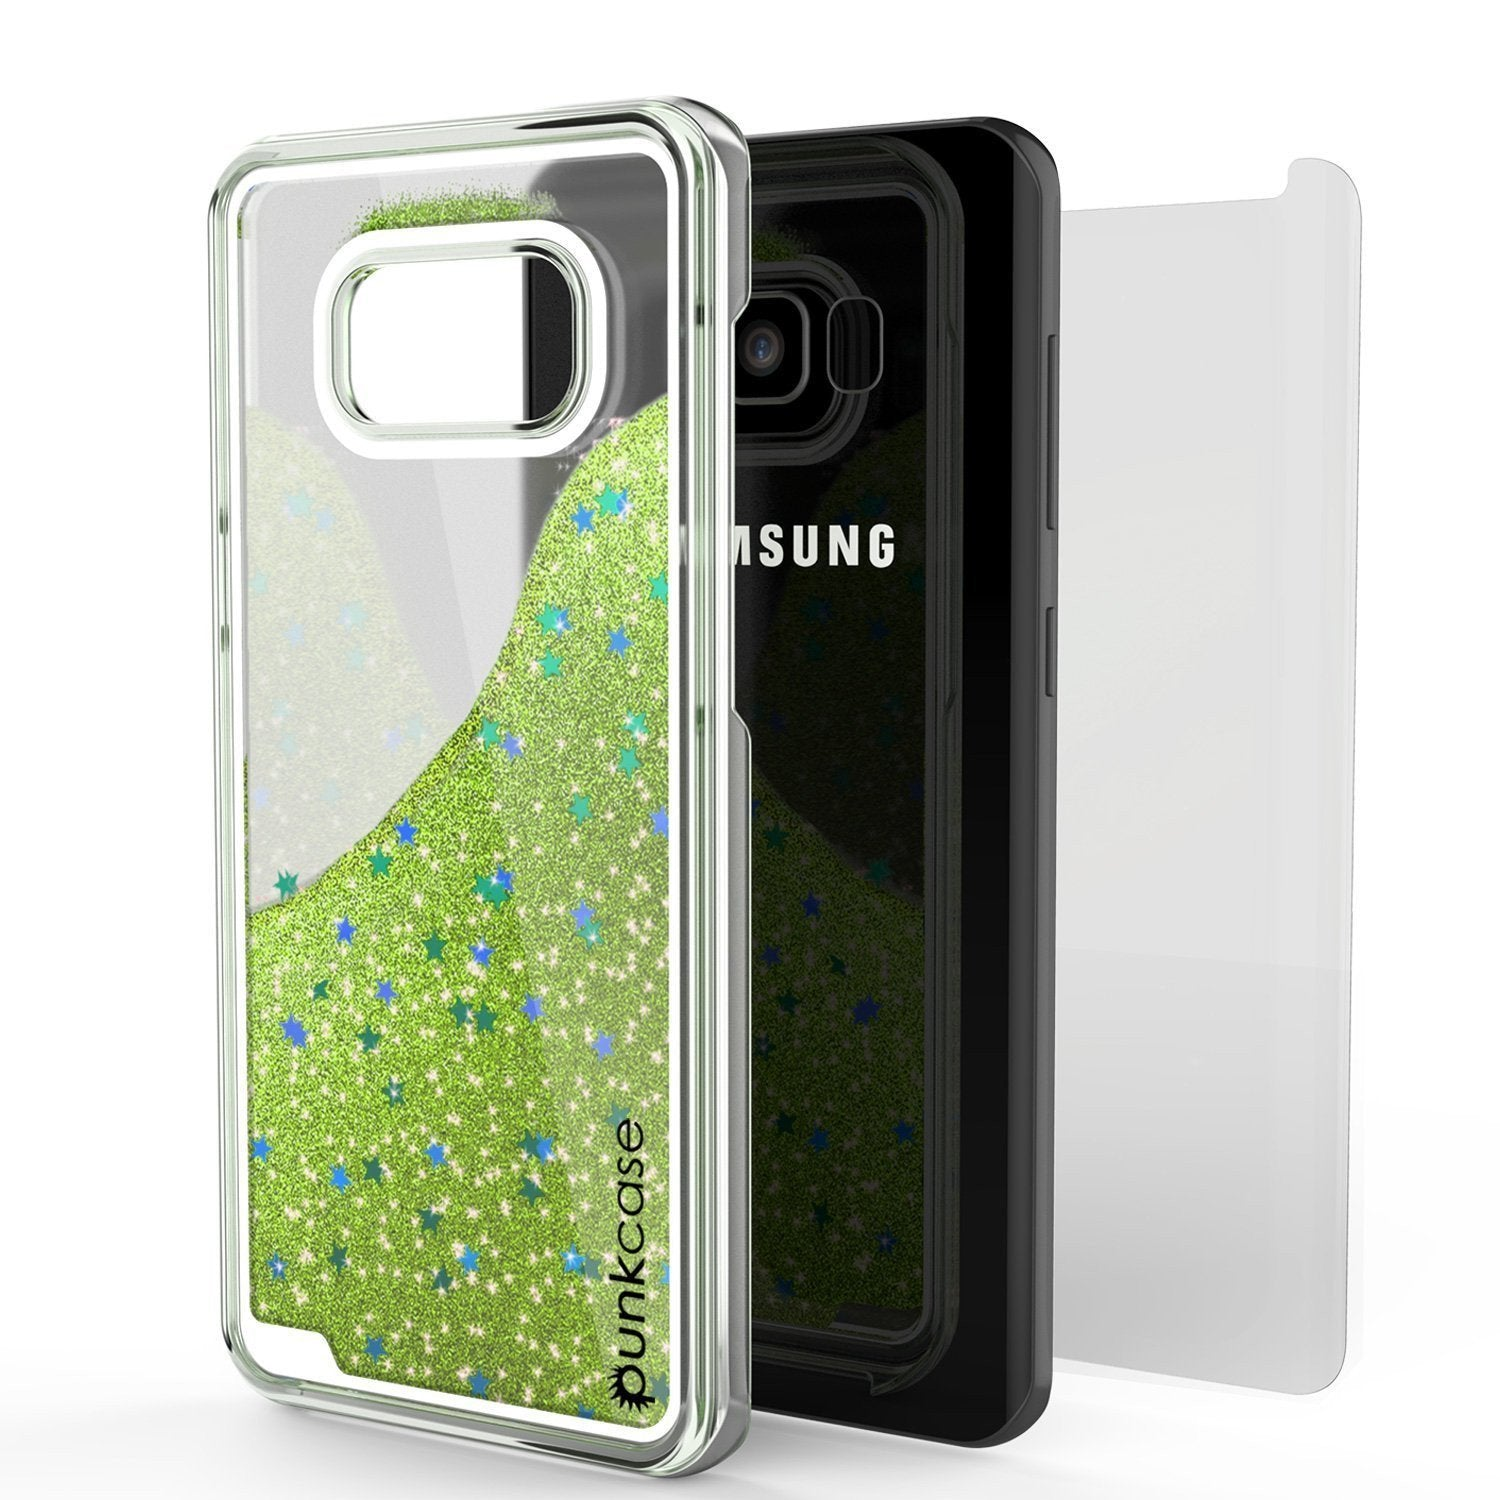 Galaxy S8 Case, Punkcase Liquid Light Green Series Protective Glitter Cover